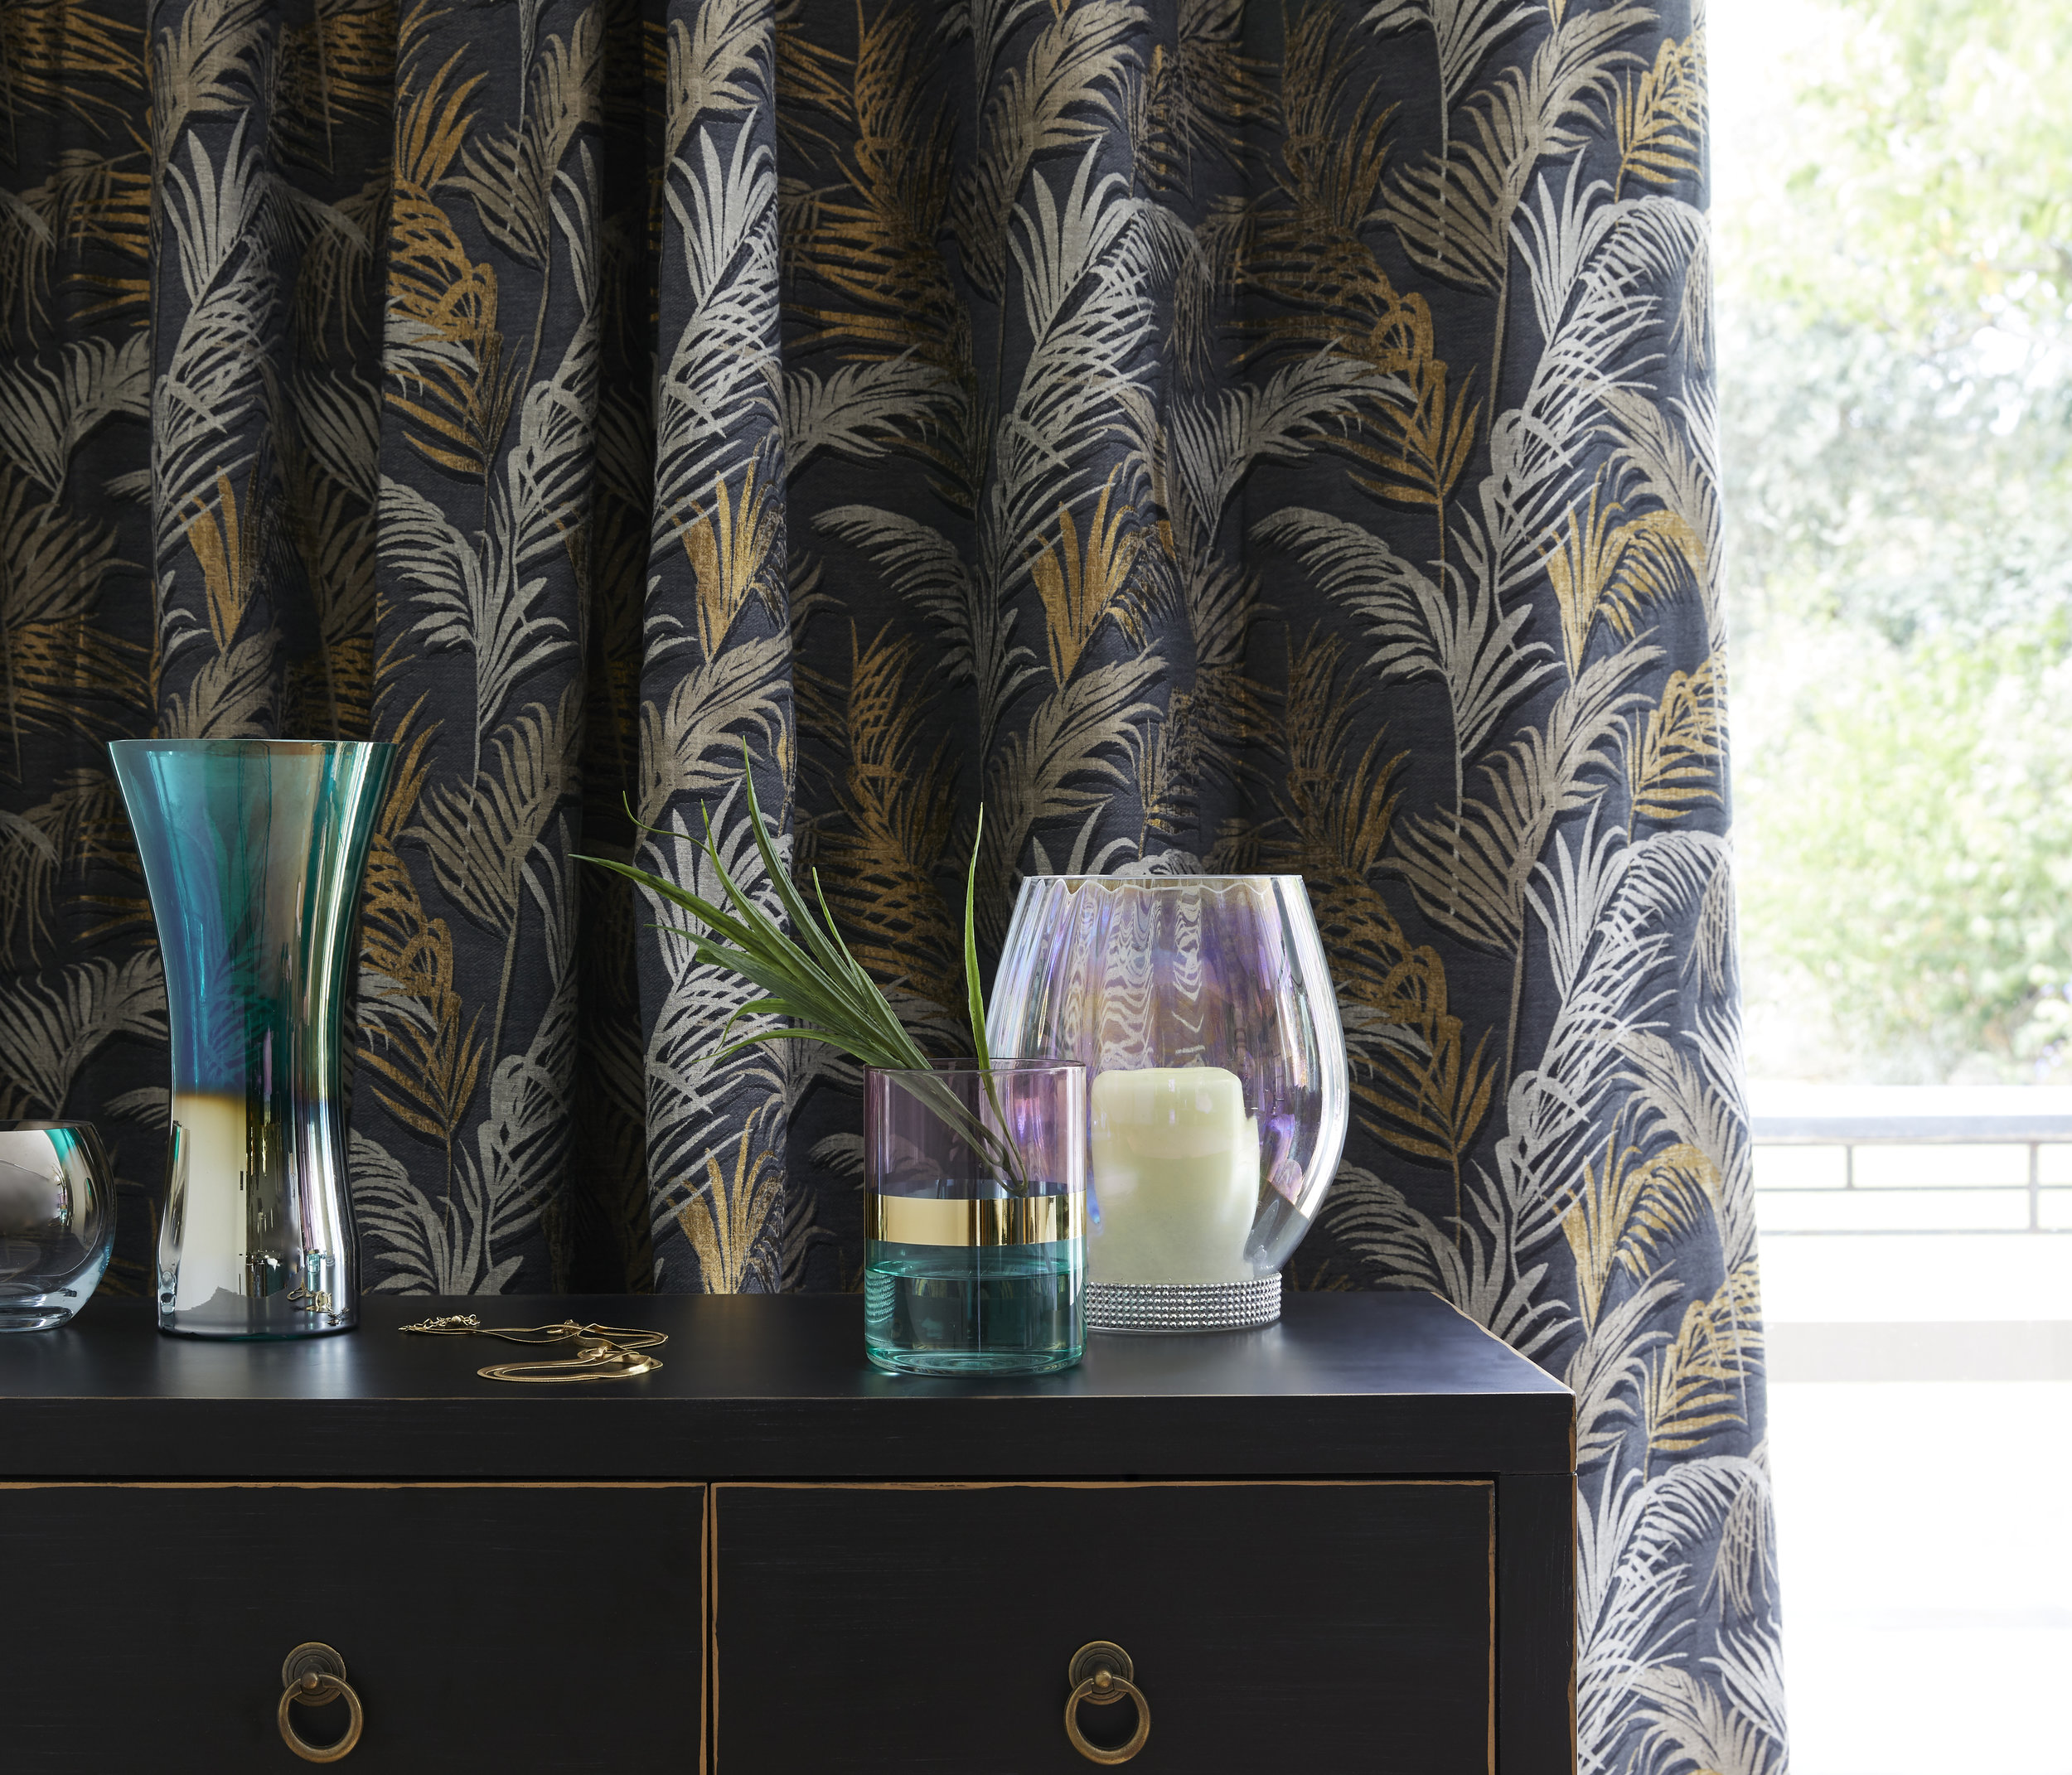 Hanna small sideboard, £149  Palm eyelet curtains, from £55  Lustre glass tealight holder, £7  Teal lustre flare vase, £12  Two-tone glass tealight holder, £6  Lustre glass hurricane with diamanté base, £16  Photo: Dunelm